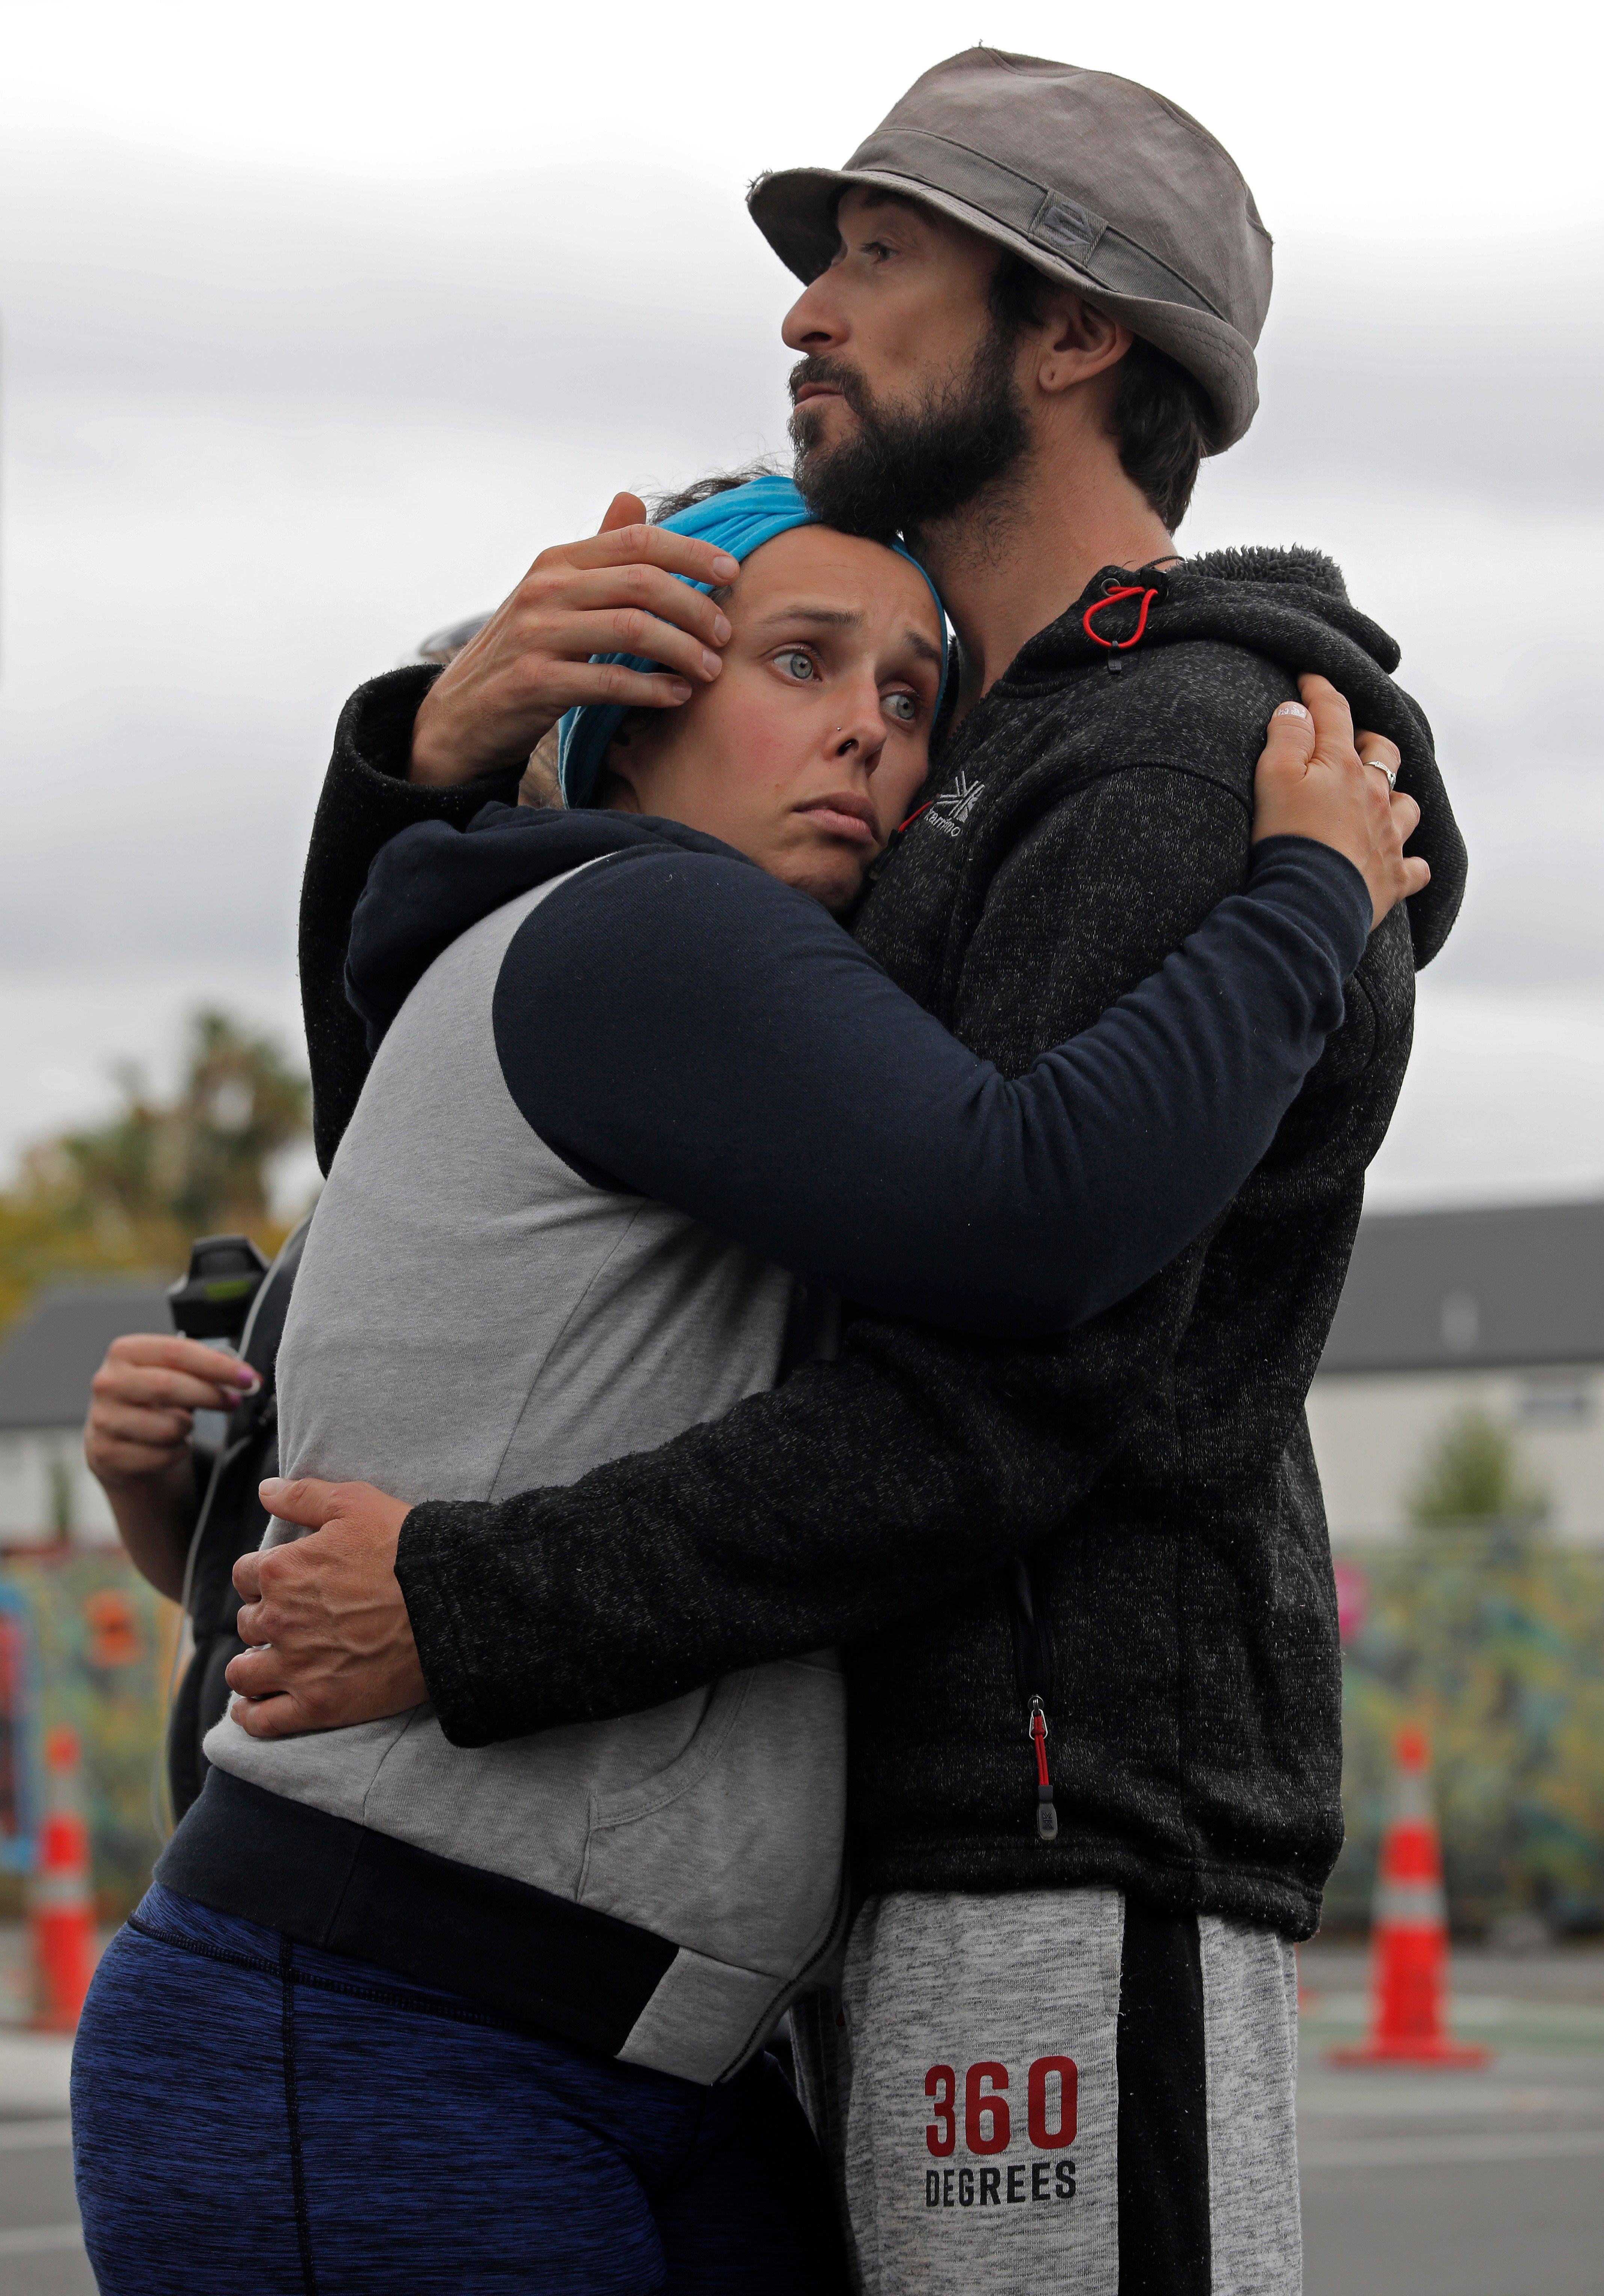 Facebook Monitoring Failure Helped Spread Christchurch Hate Around The